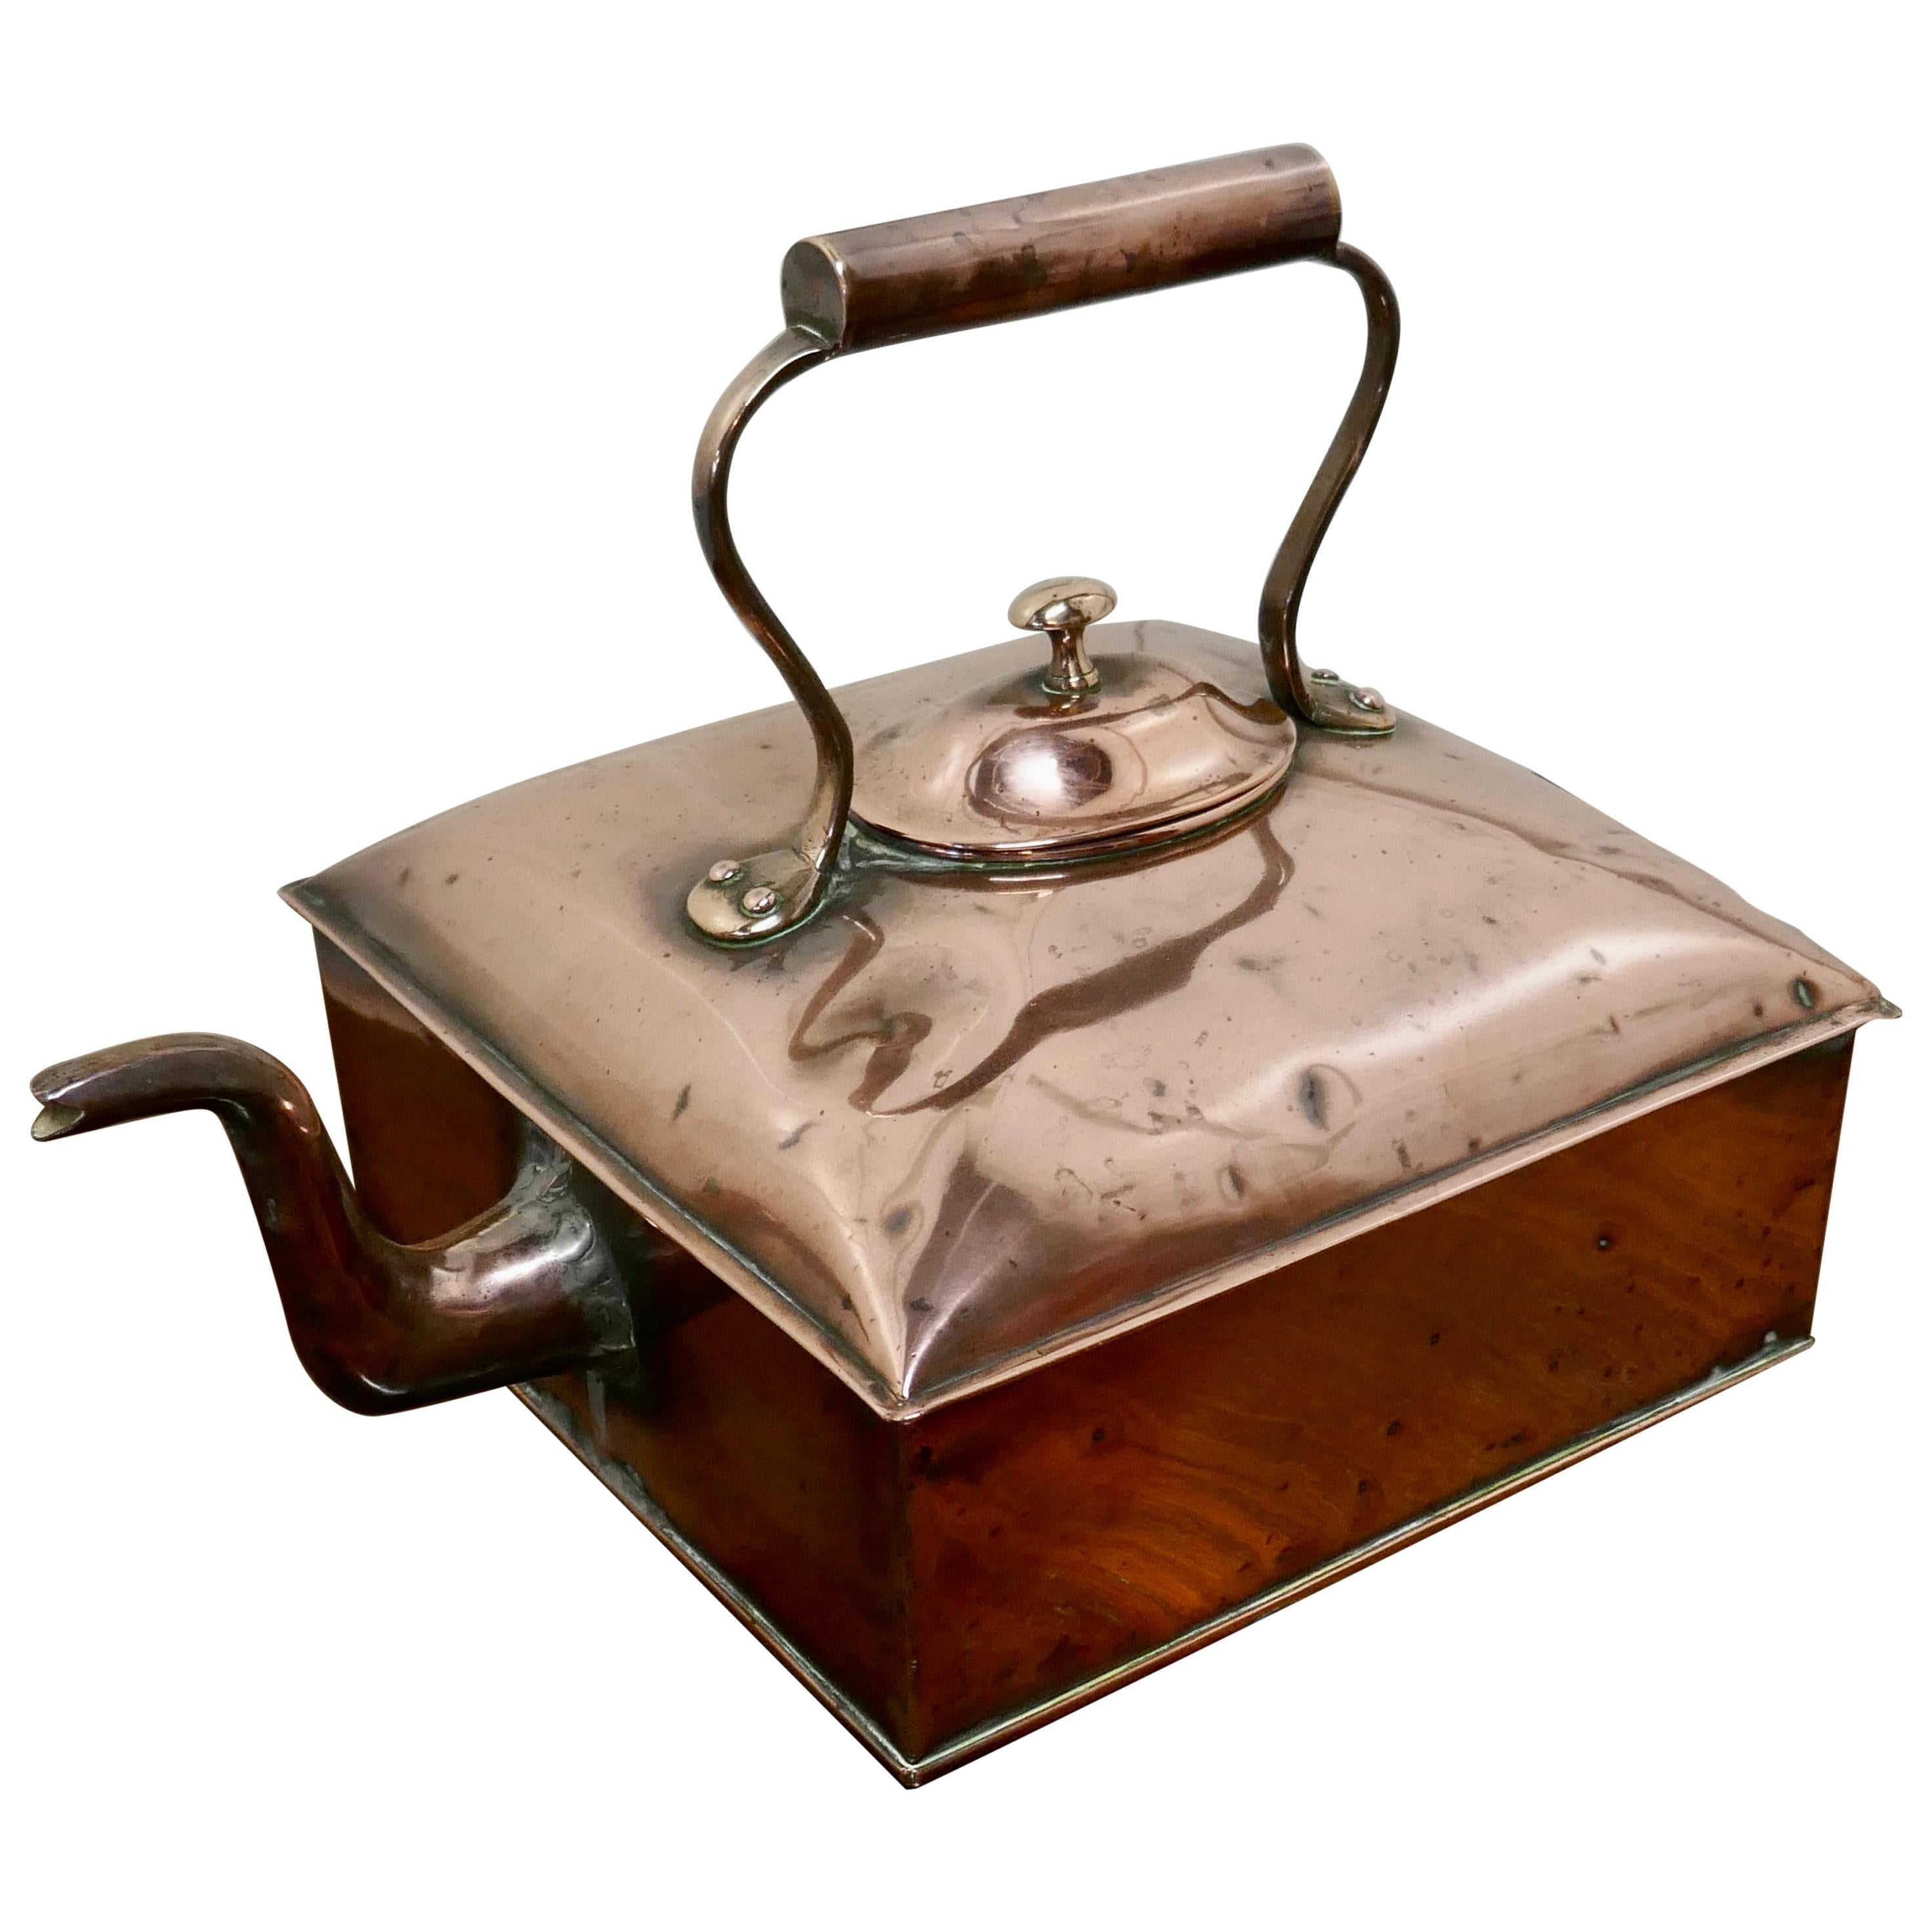 Charming 19th Century Large Square Copper Kettle